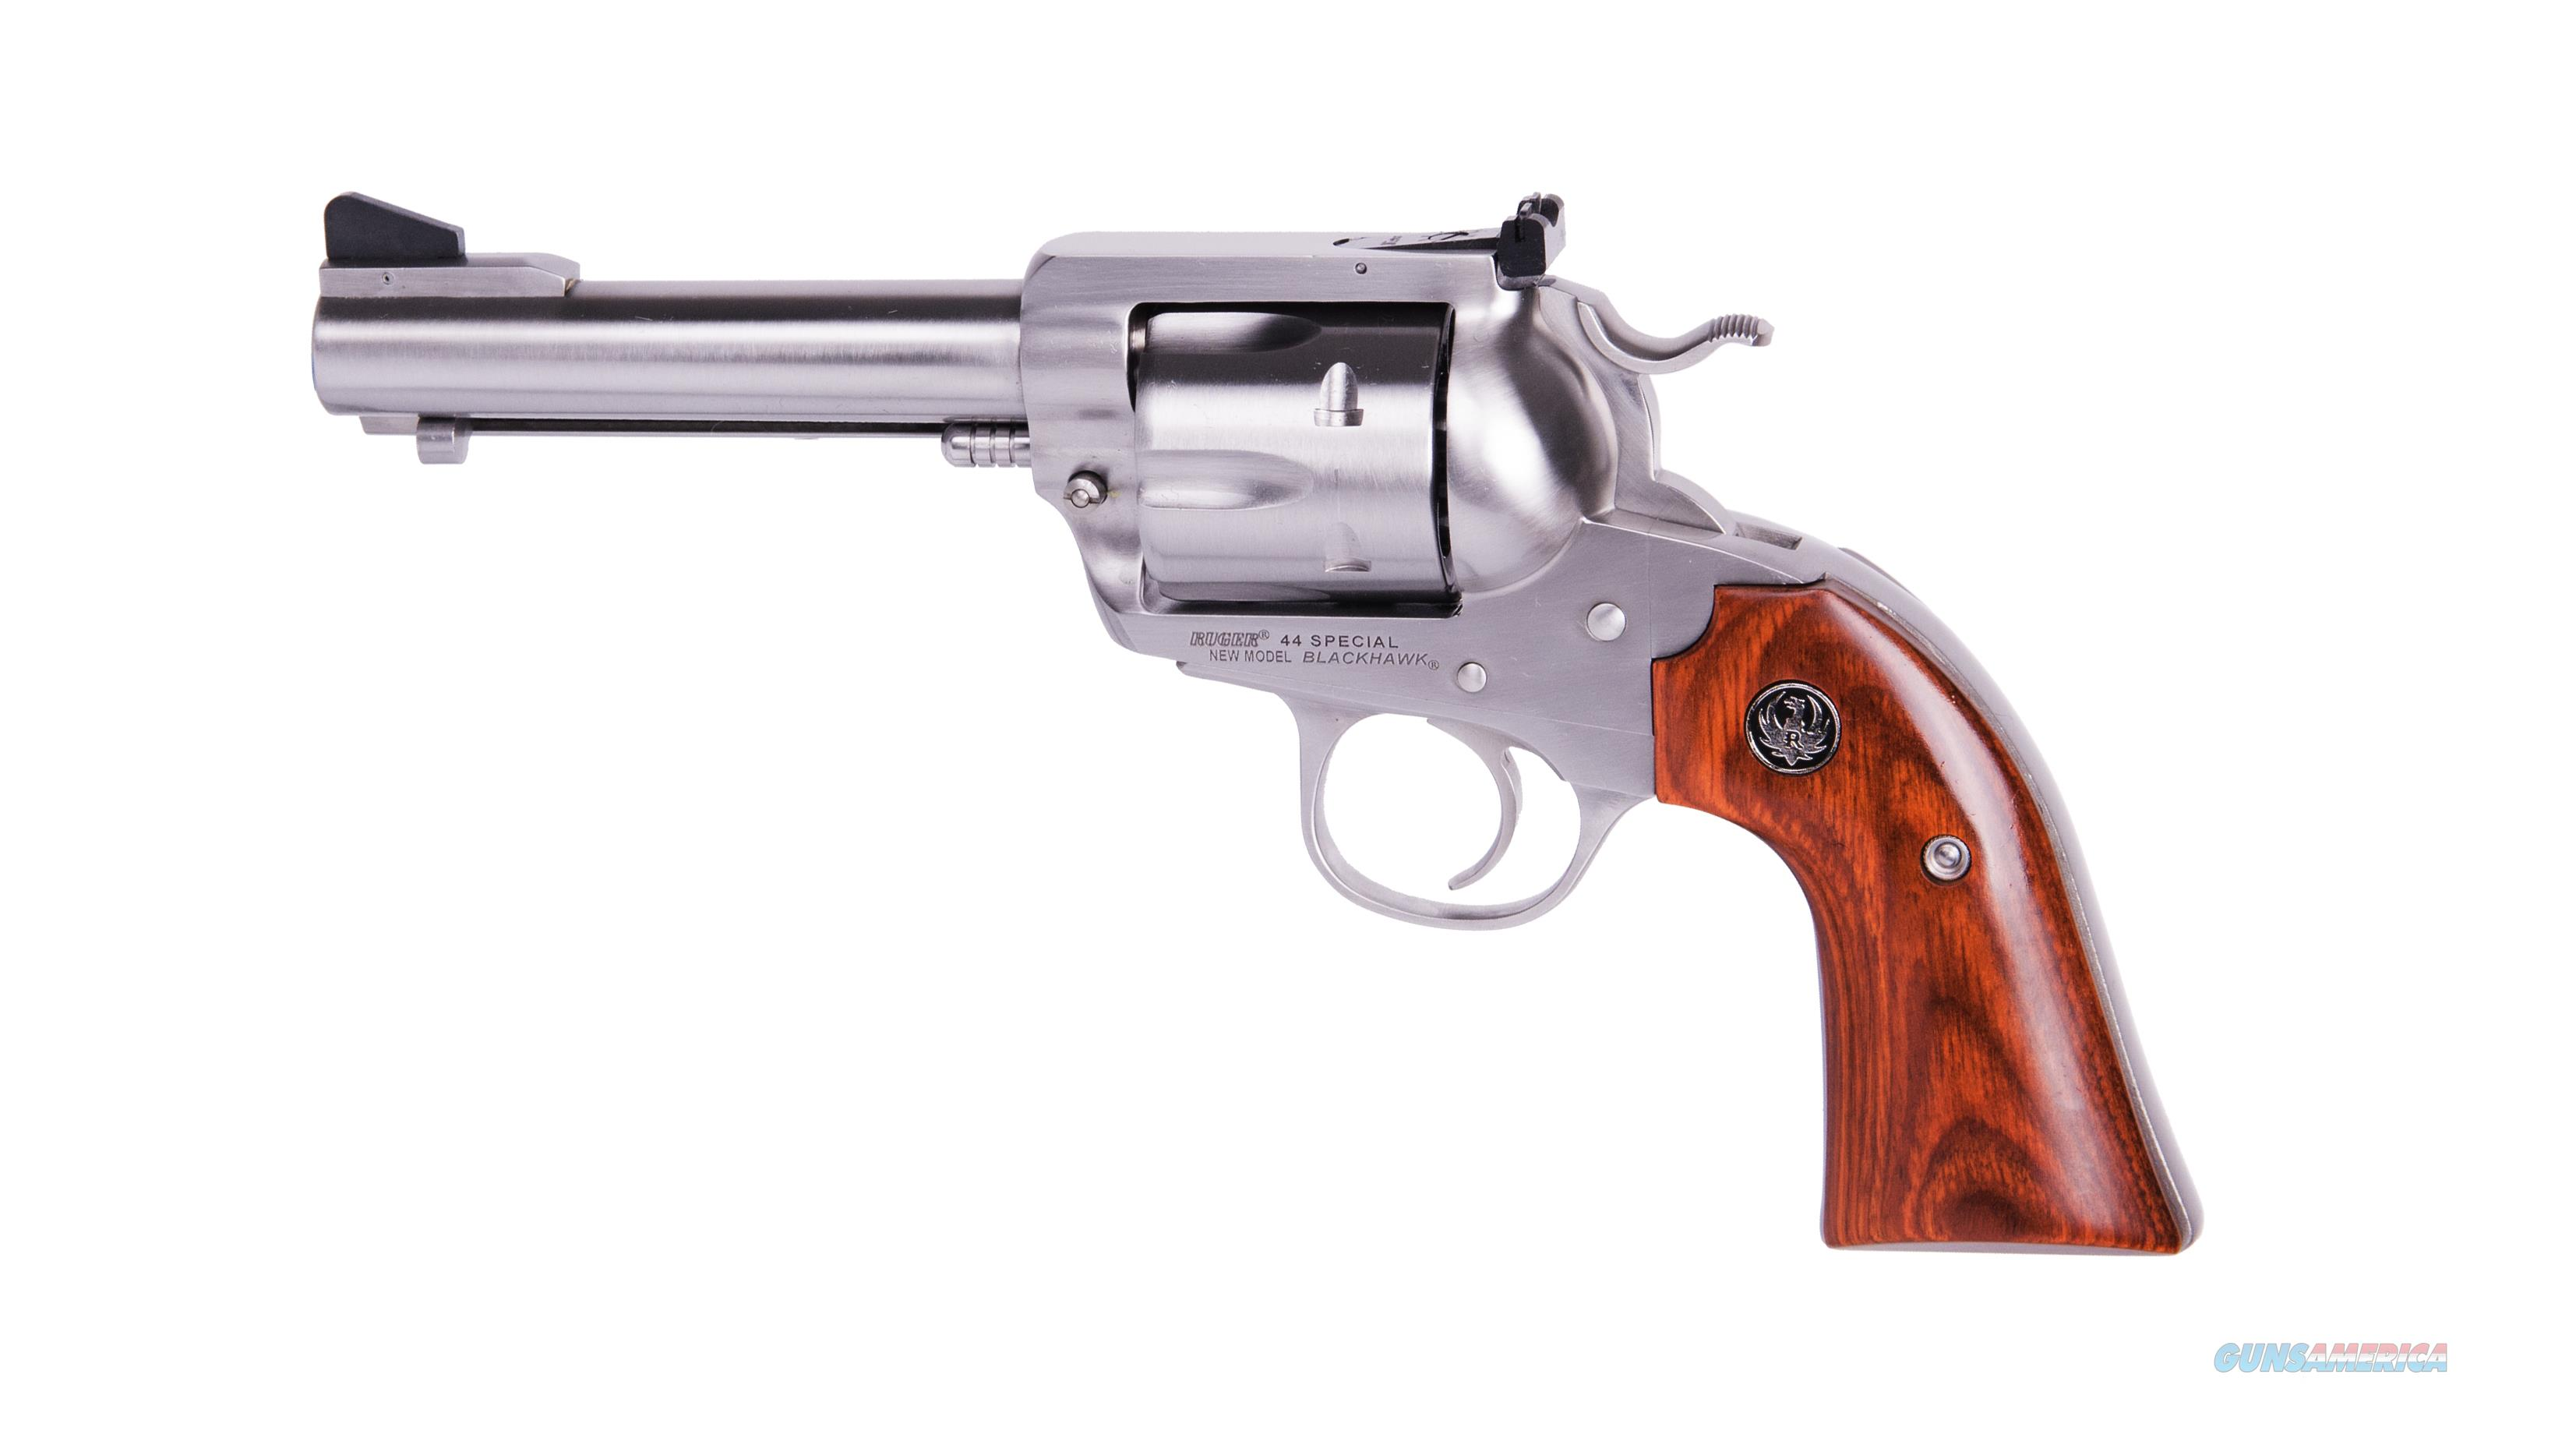 Ruger BISLEY FLATTOP 44SPC 4-5/8 SS 5249  WOOD GRIPS/ADJ SIGHTS  Guns > Pistols > Ruger Single Action Revolvers > Cowboy Action